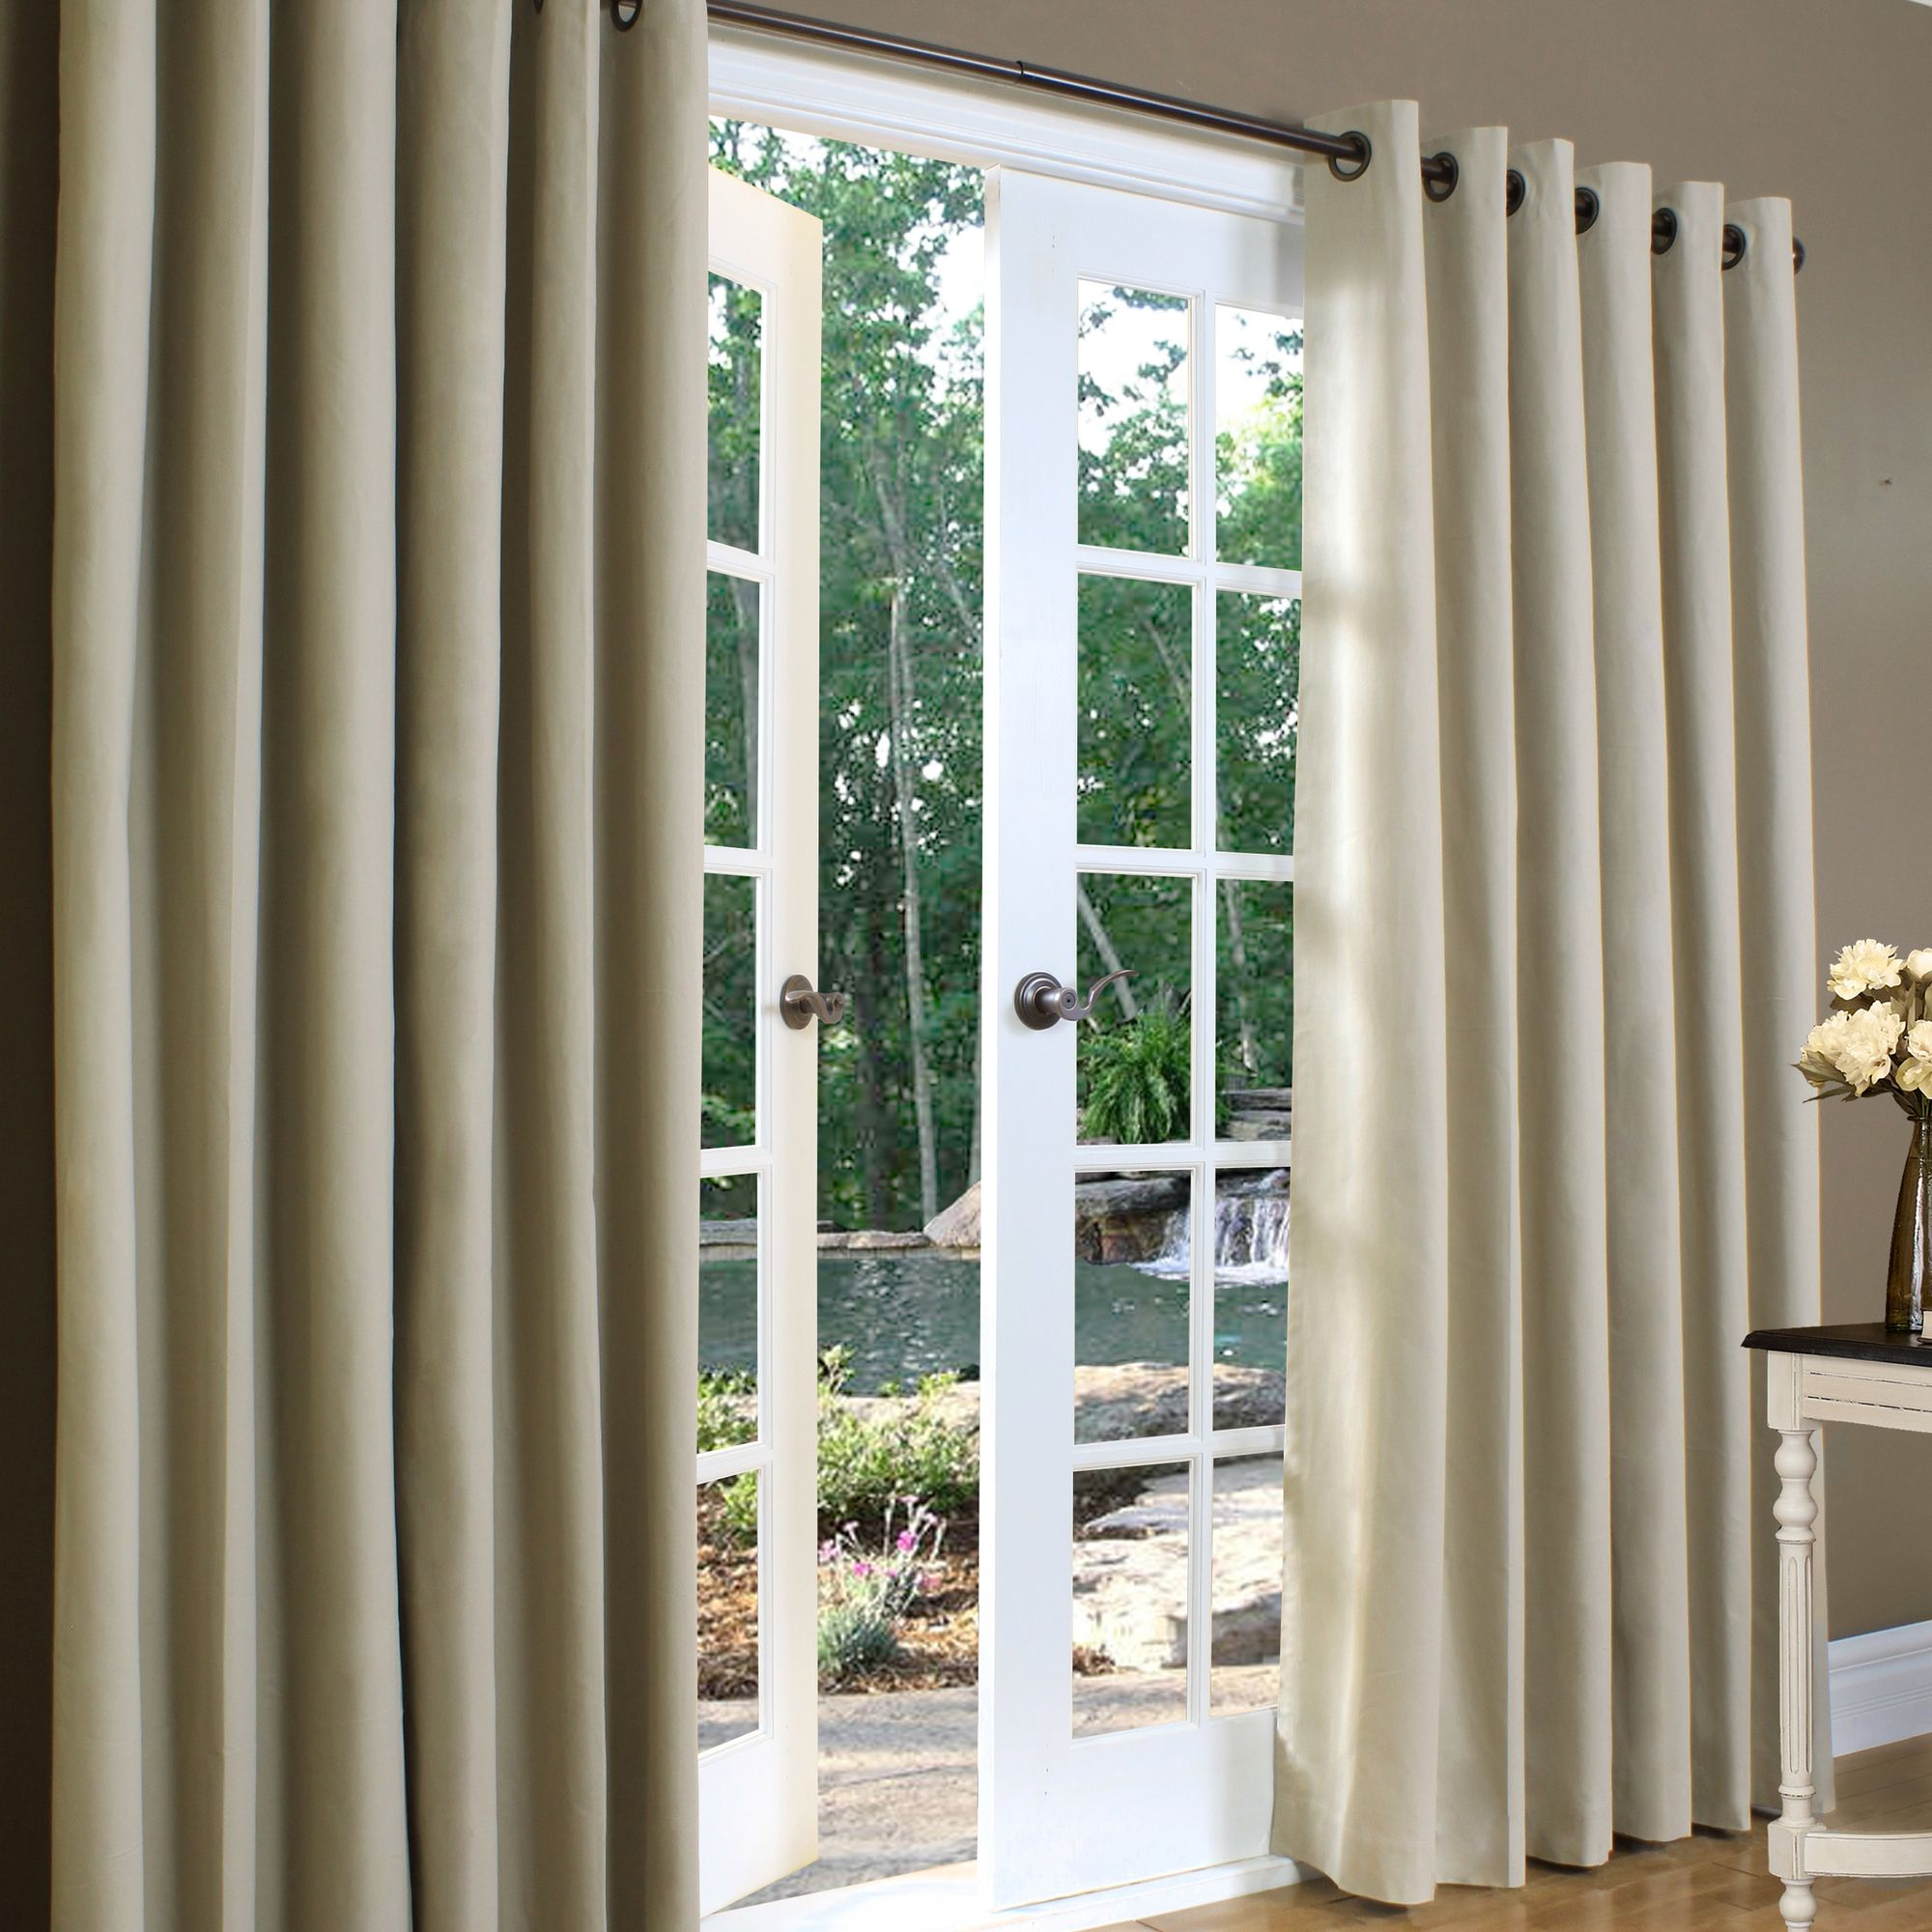 Insulating Curtains For Sliding Glass Doors Home Doors Curtains